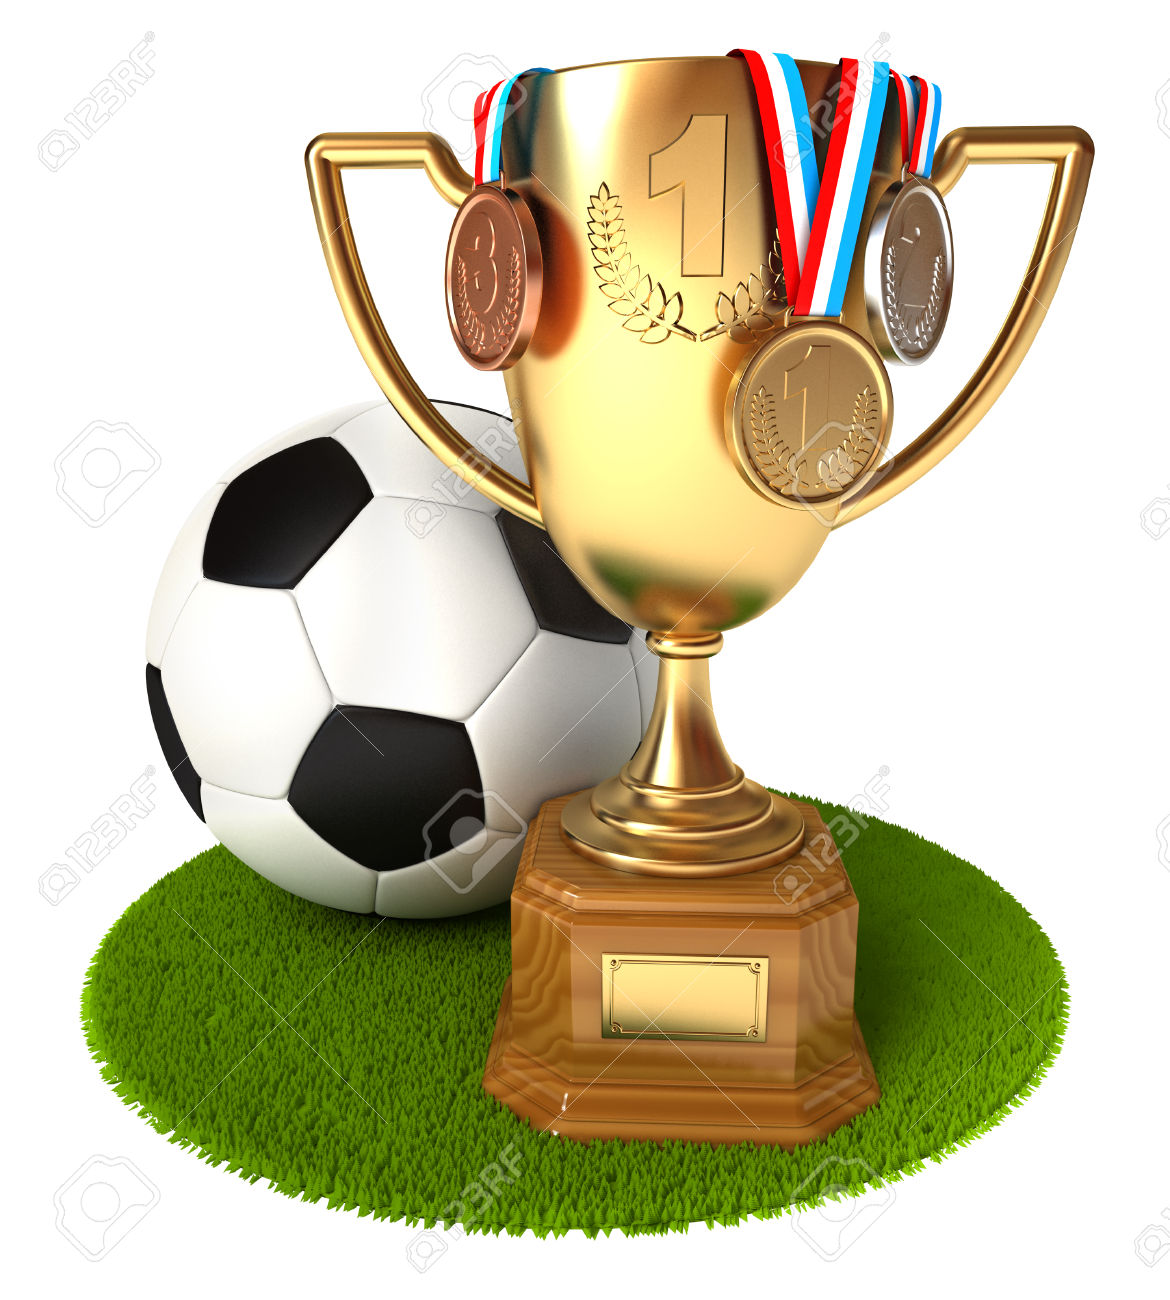 Gold Cup with medals and soccer ball. Conceptual illustration. Isolated on white background. 3d render